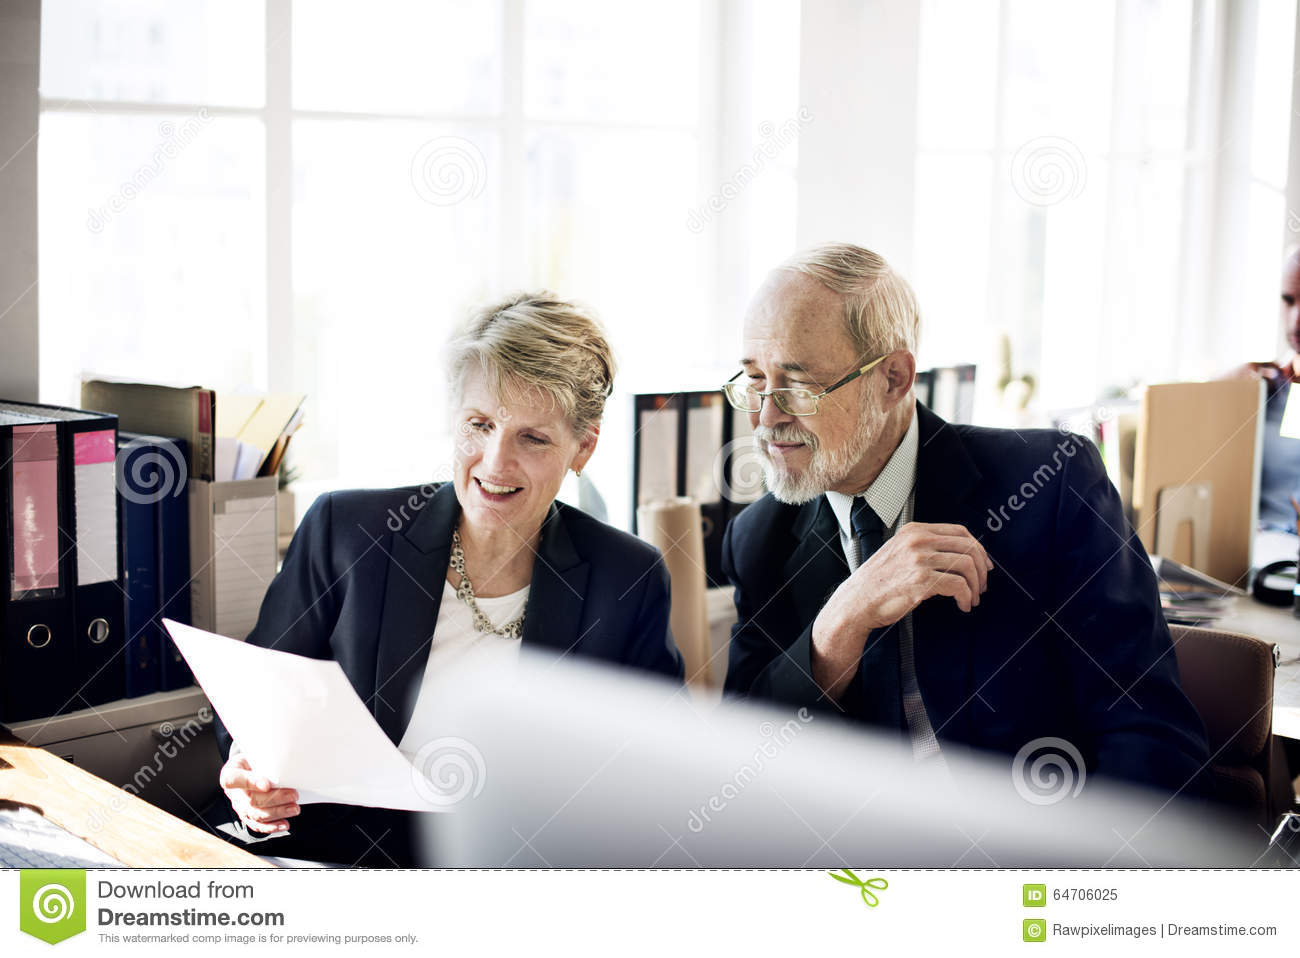 Senior Marketing Manager Holding Up A Blank Ad Board RoyaltyFree Stock Image  CartoonDealer